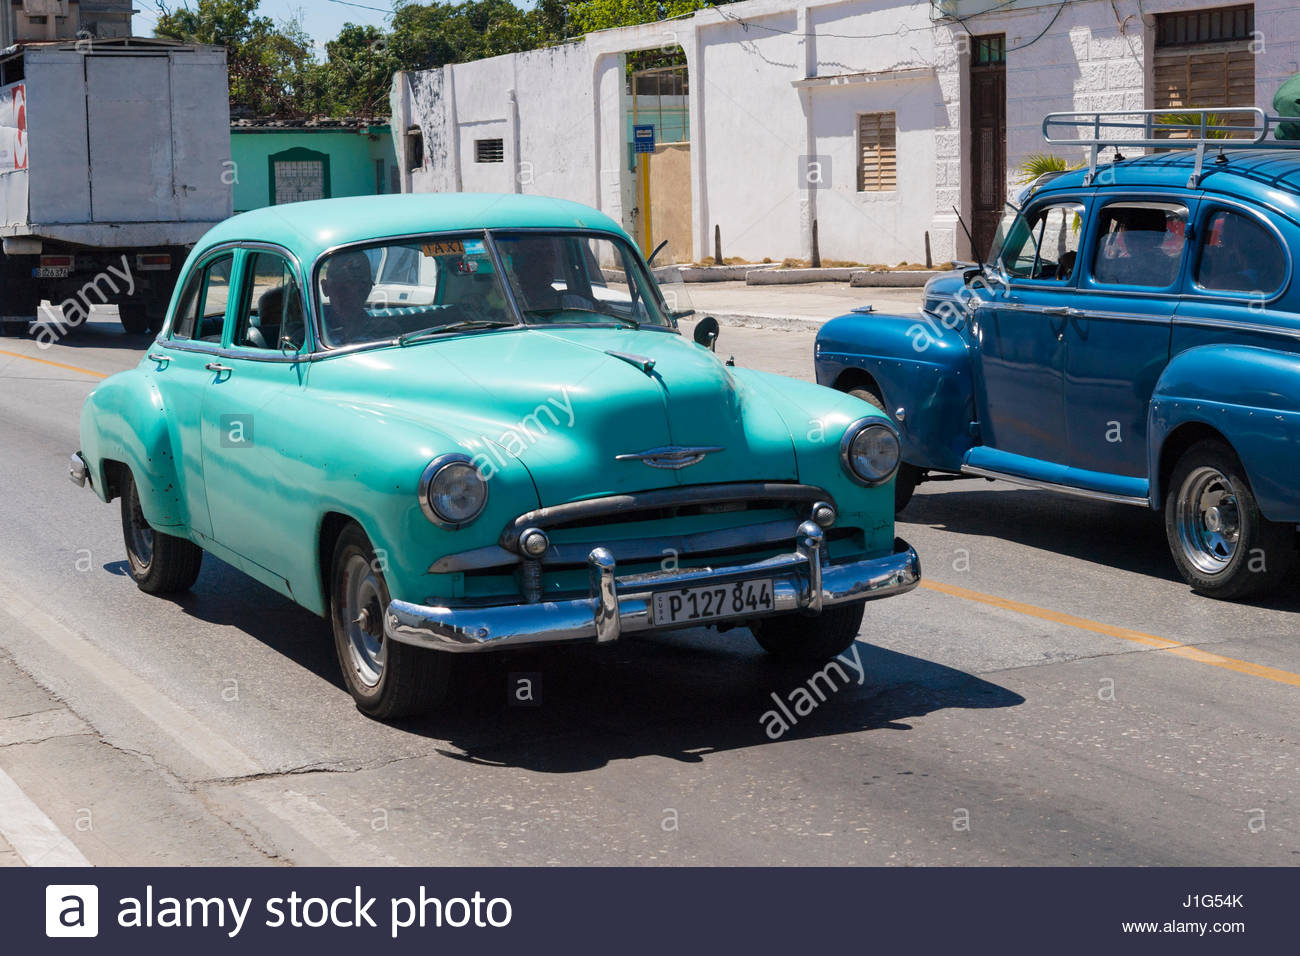 Old American cars still in use in the Caribbean island. Chevrolet ...